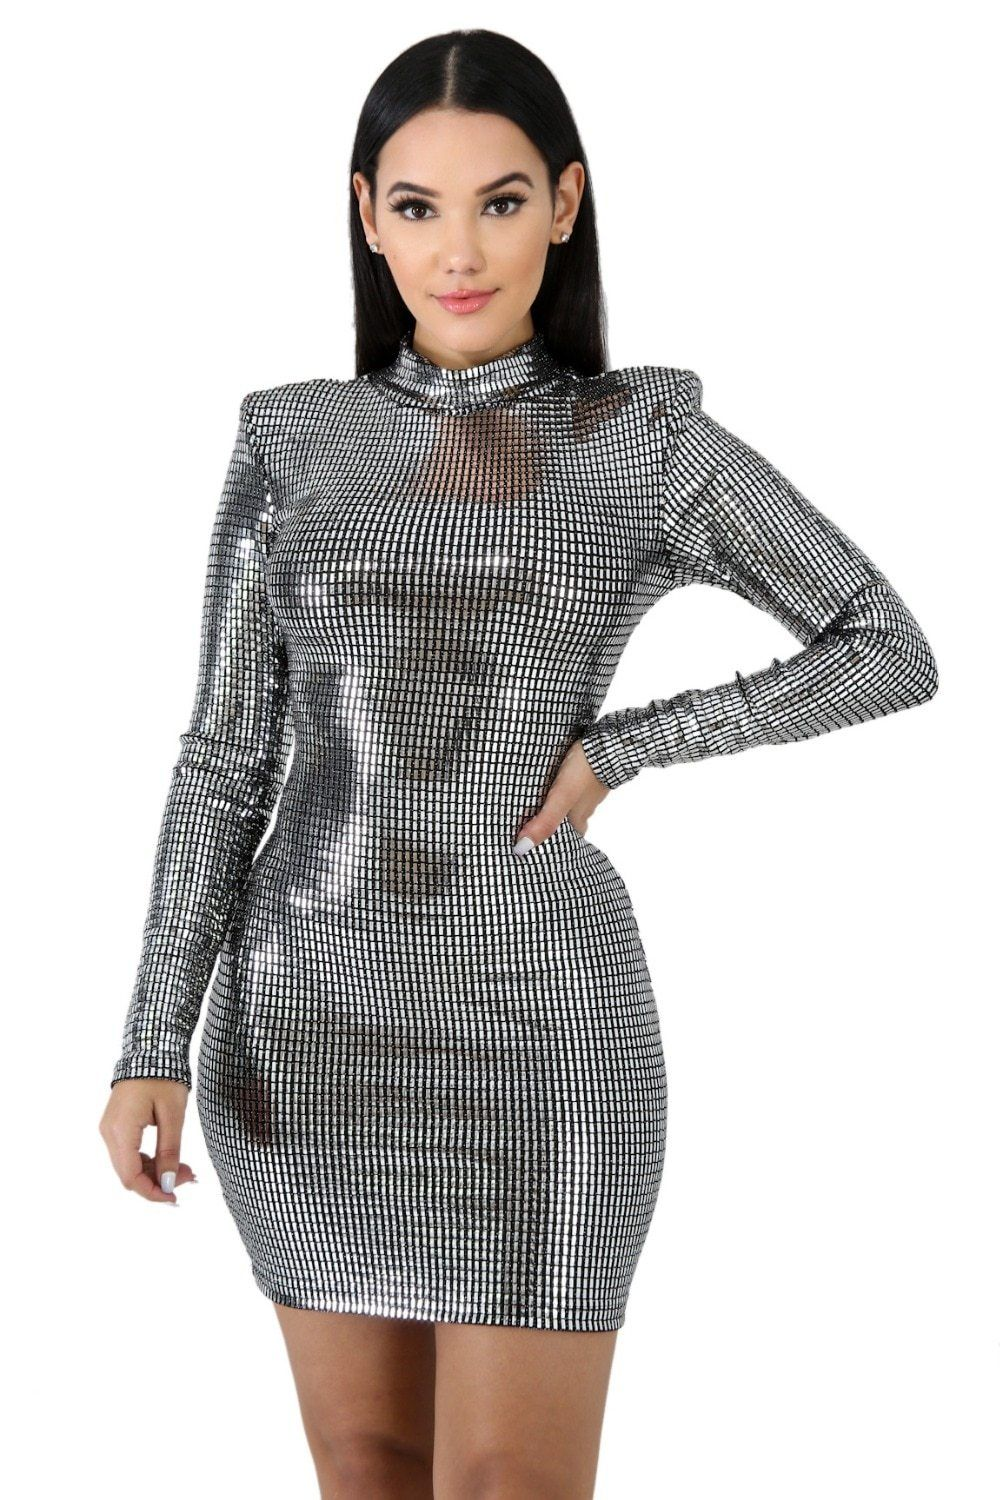 8fb2e921fcac Sequined Long Sleeve Sexy Mini Dodycon Dress Search shop in bio! Silver  Sequins Versatile Party Dress